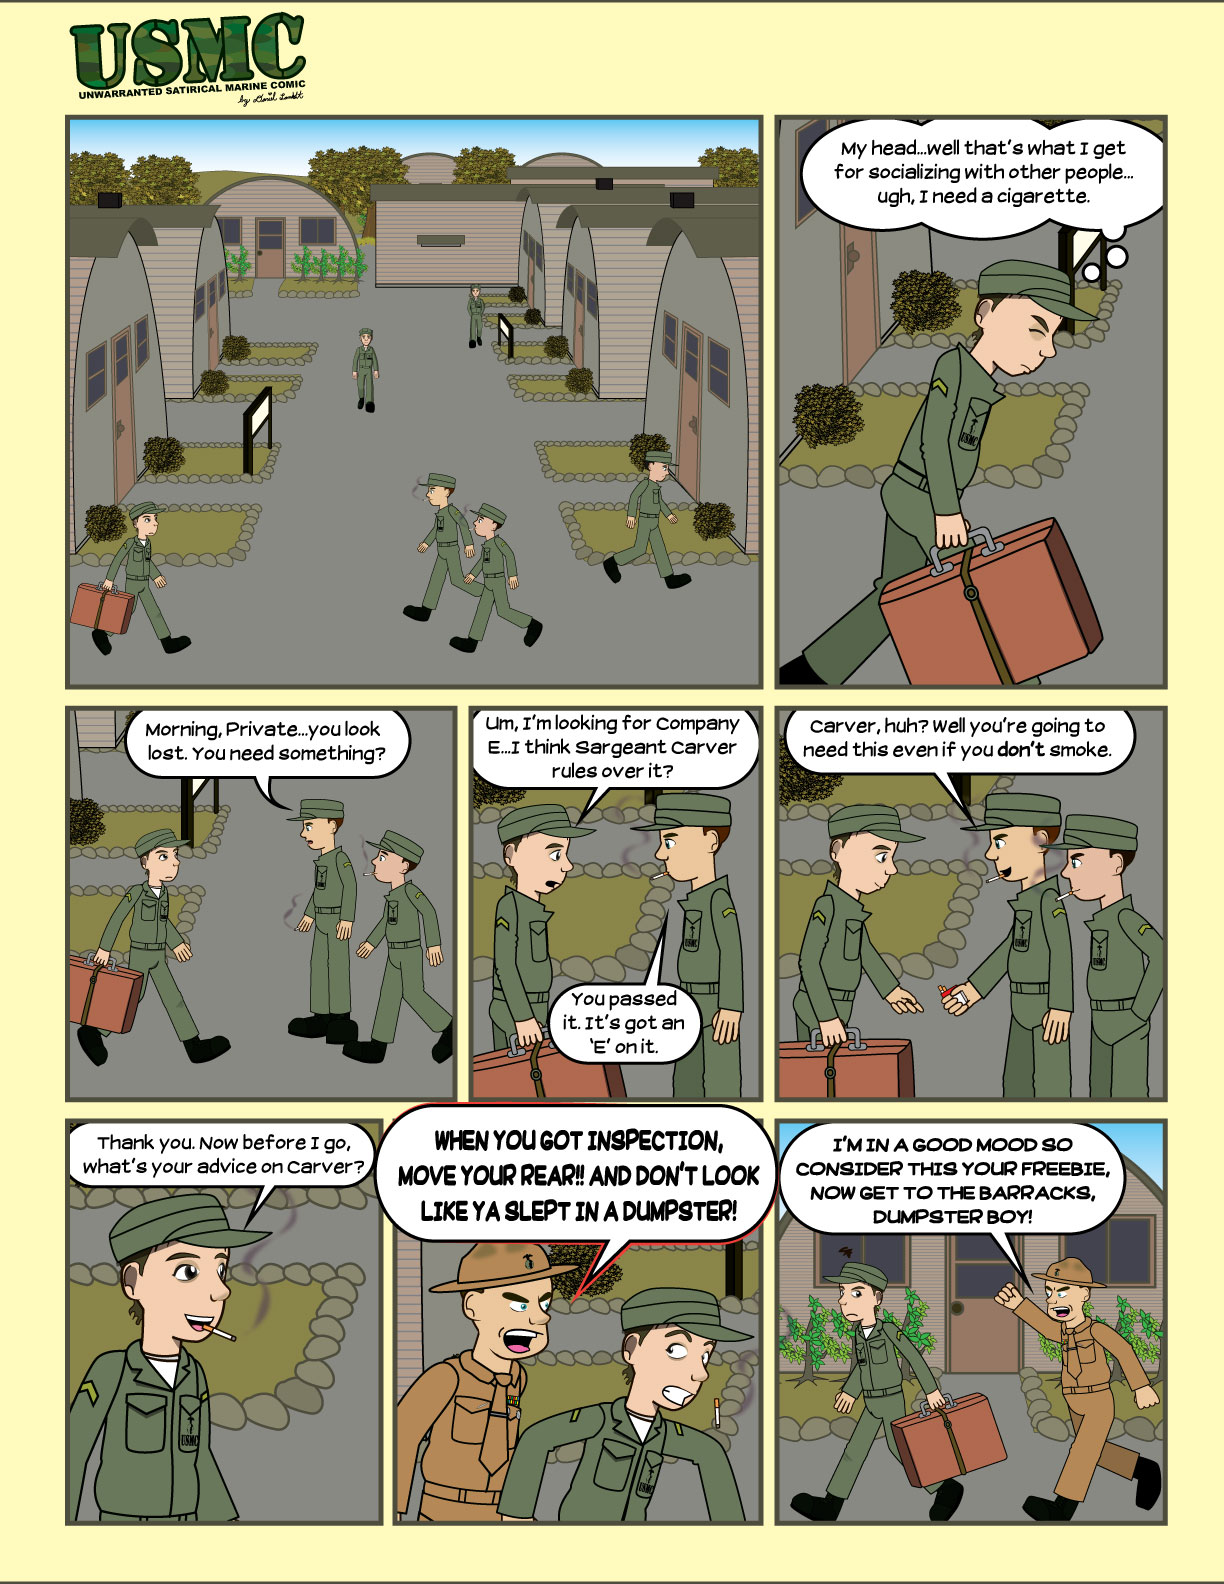 The first page of the comic.